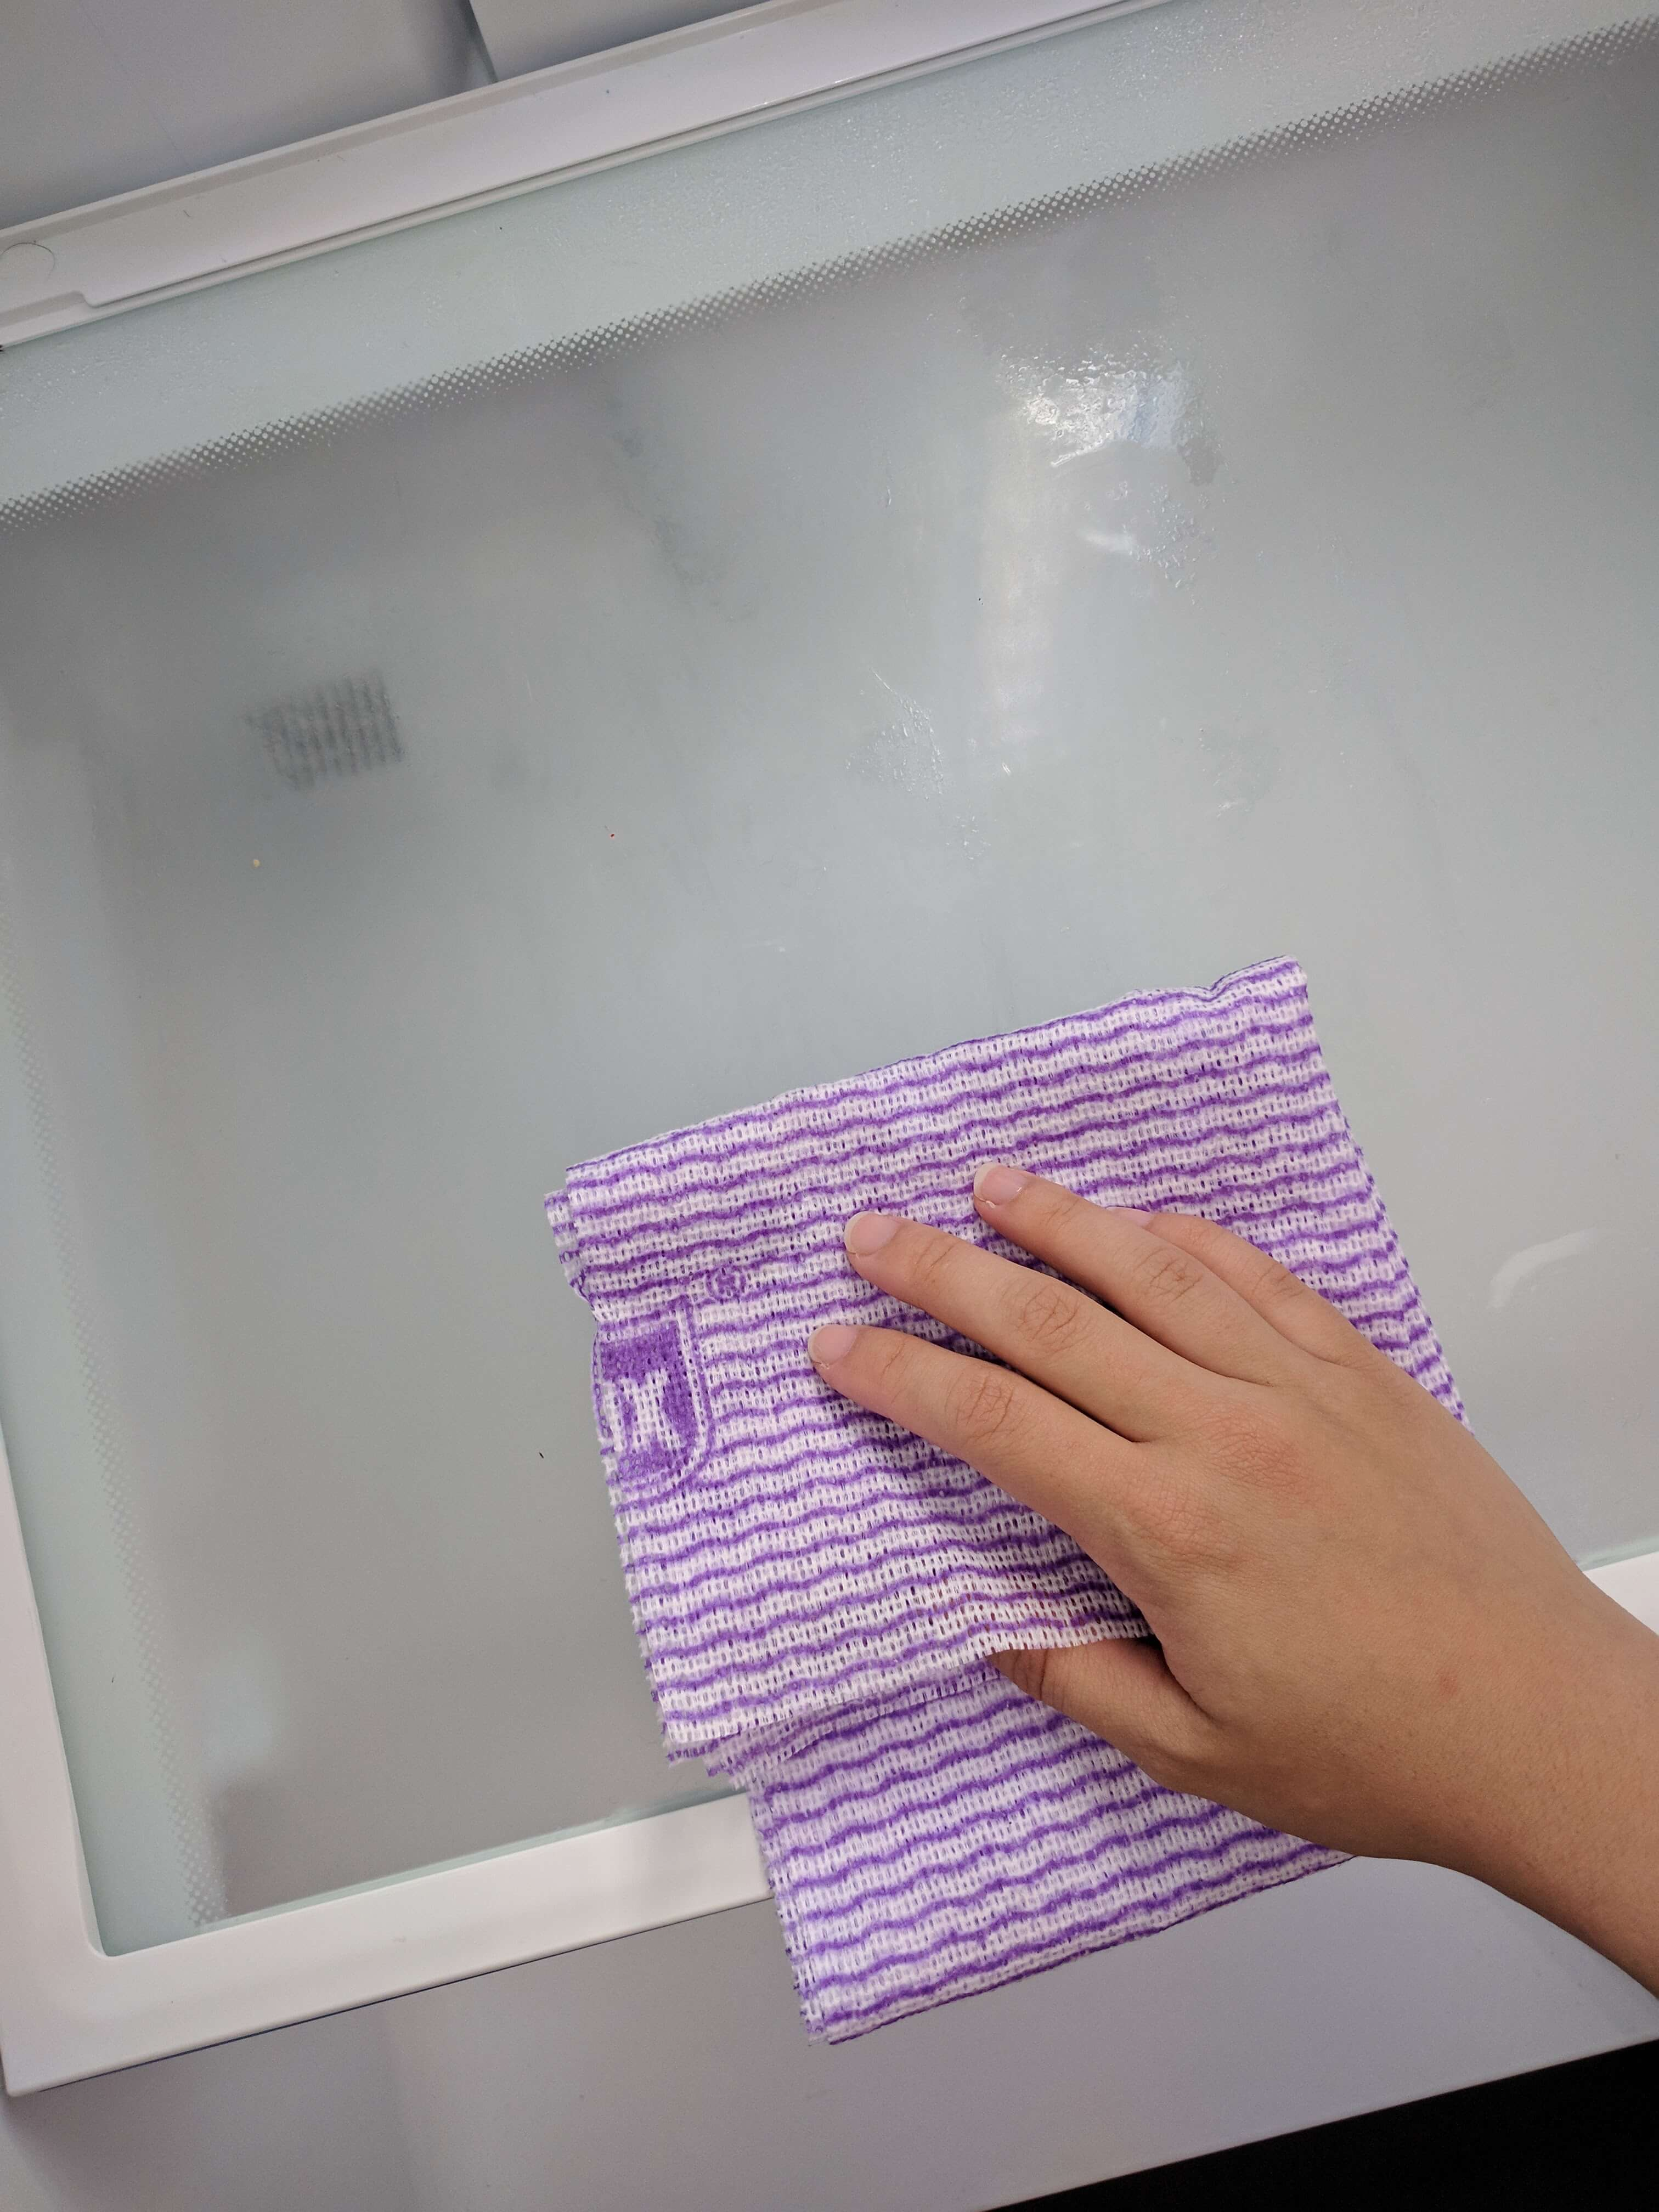 How to clean your fridge - wiping fridge interior 2